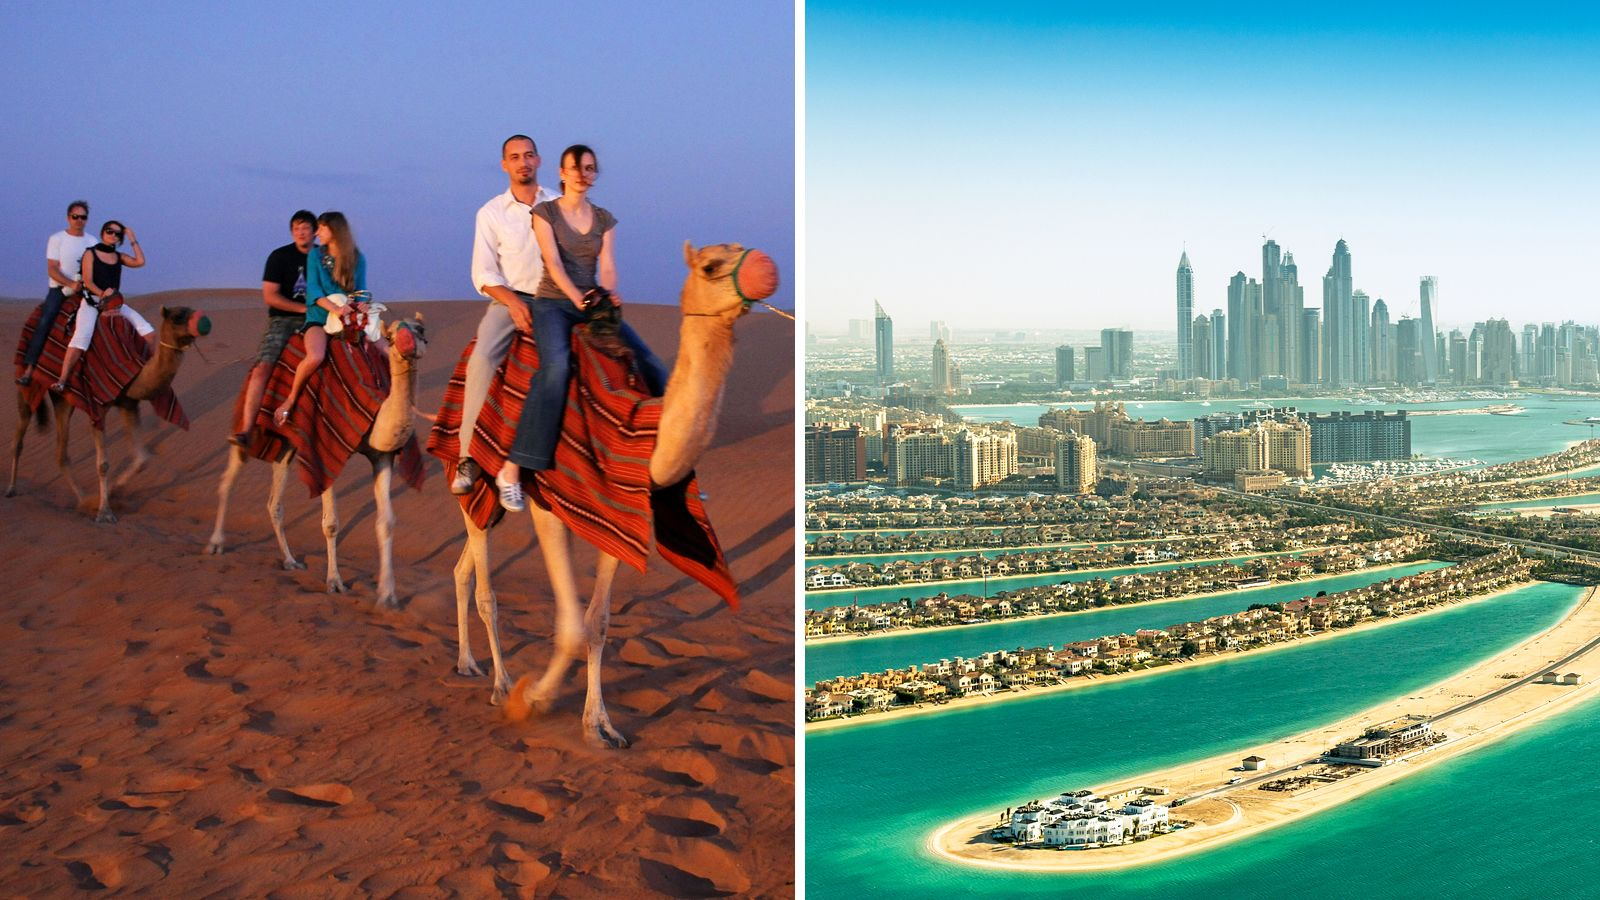 Combo images of activities in Dubai